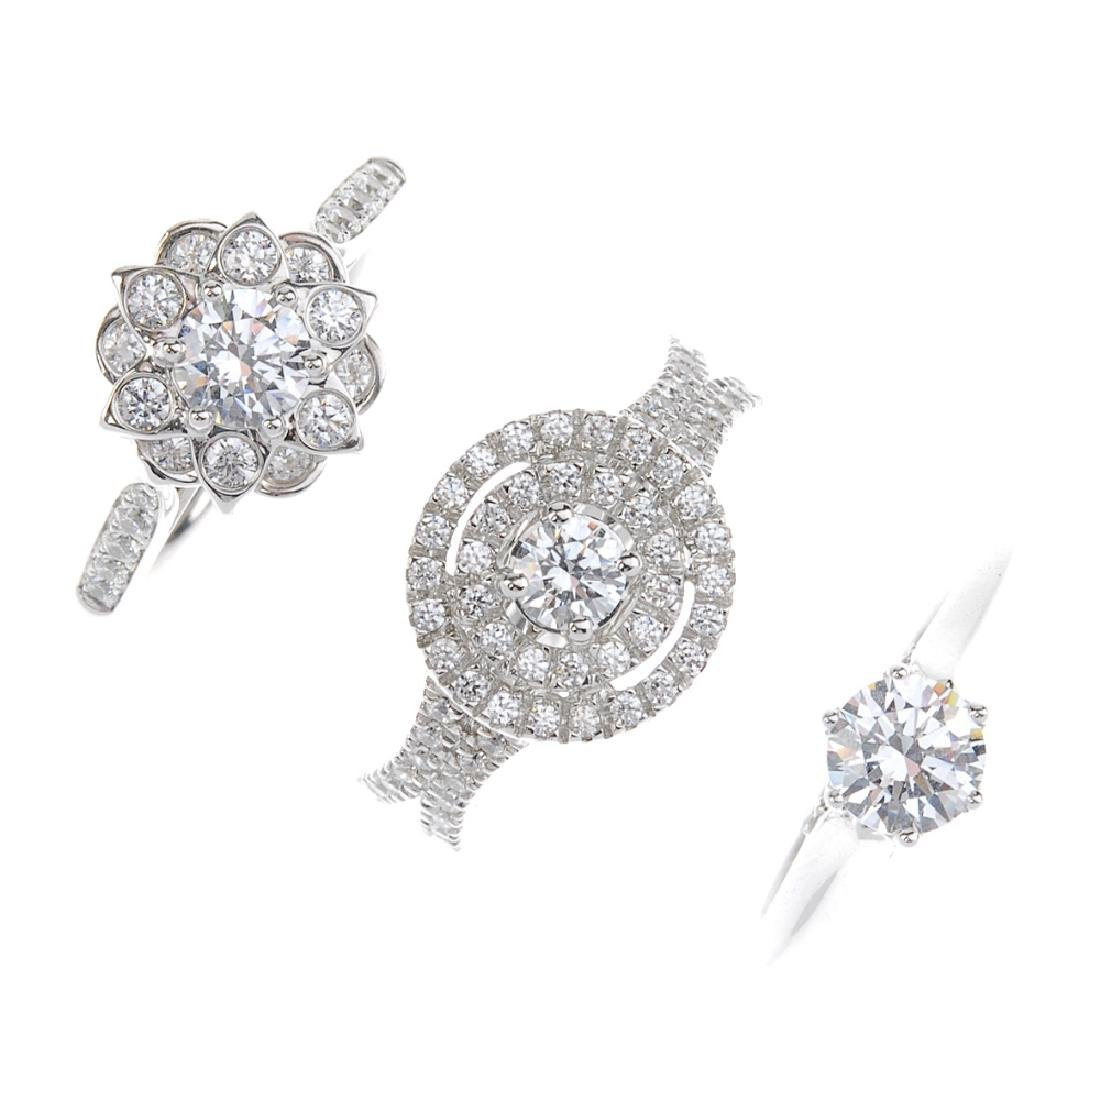 Three cases of cubic zirconia set sample rings. Stored